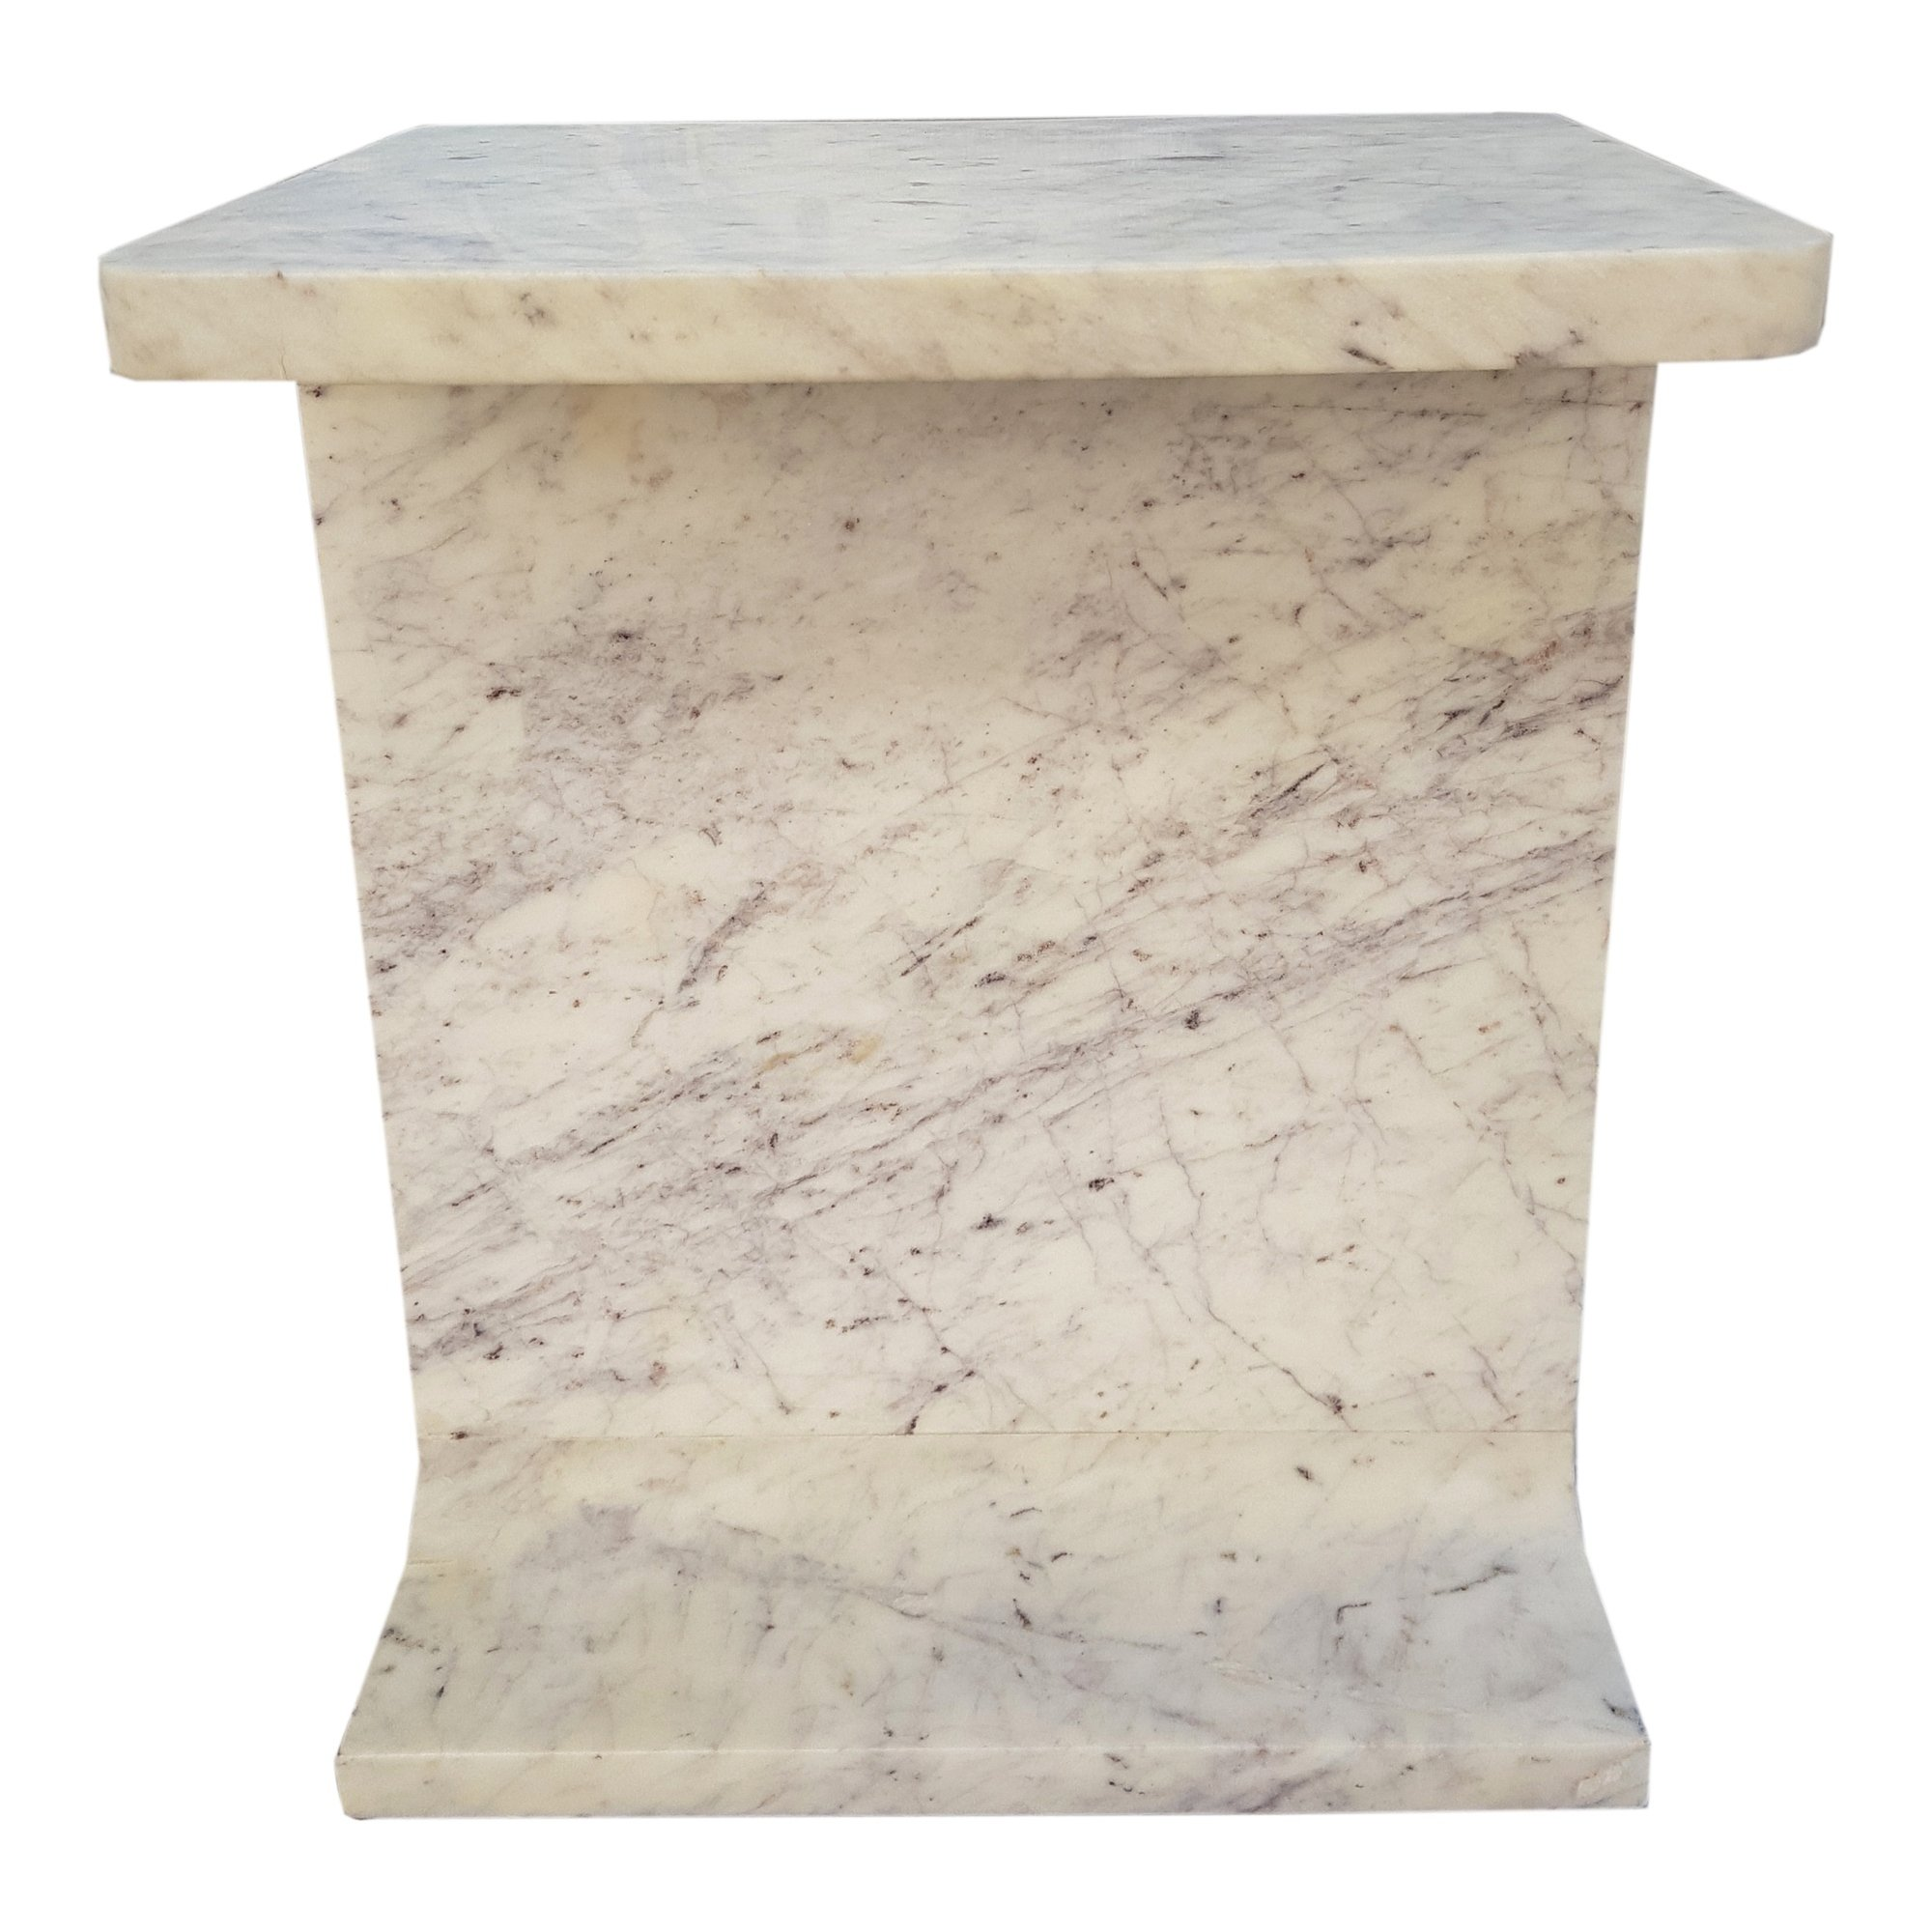 aurelle home modern white marble accent table free outdoor tables shipping today screw furniture legs black wrought iron decorative cabinets for living room dark wood side gold